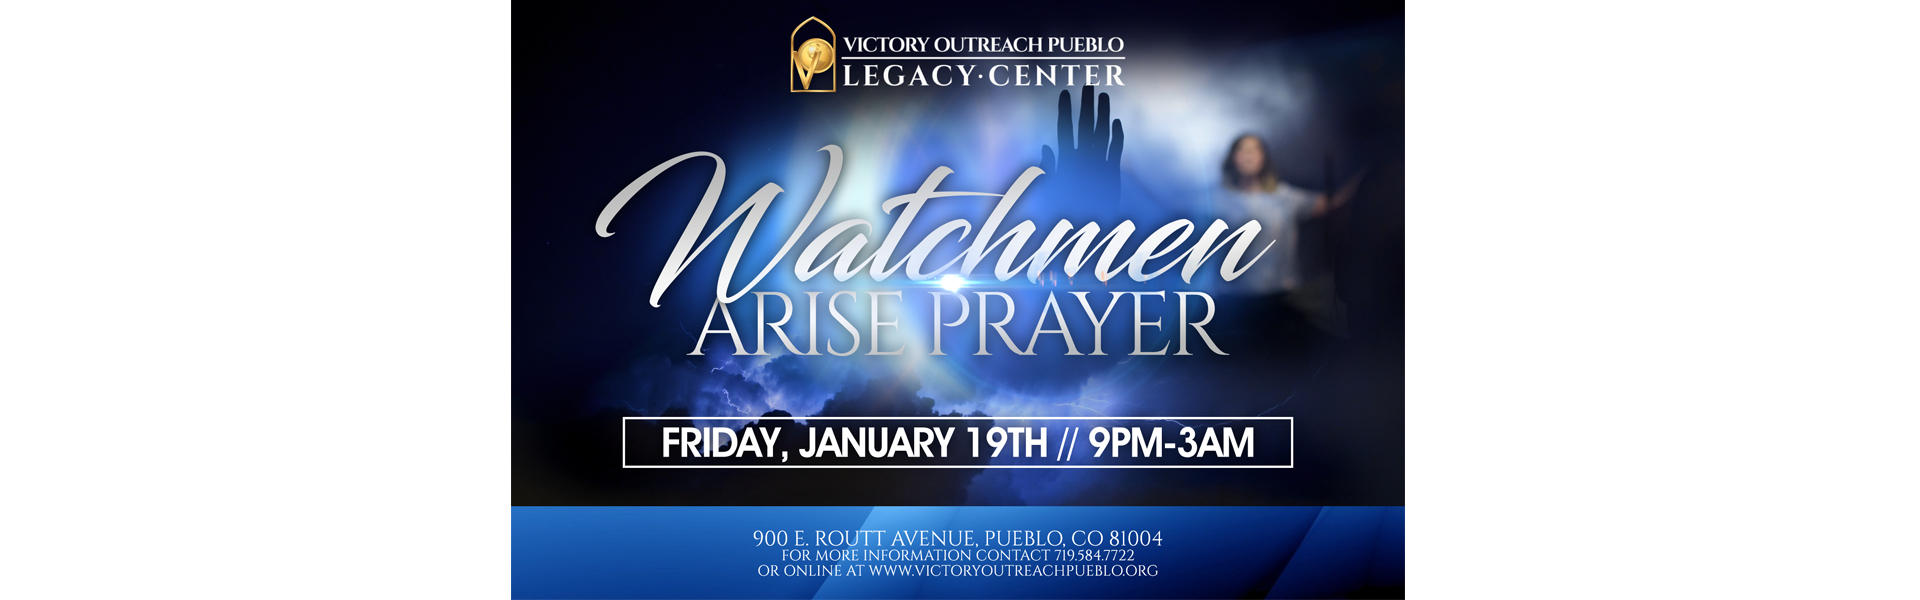 Watchman Arise Prayer 1/19/18